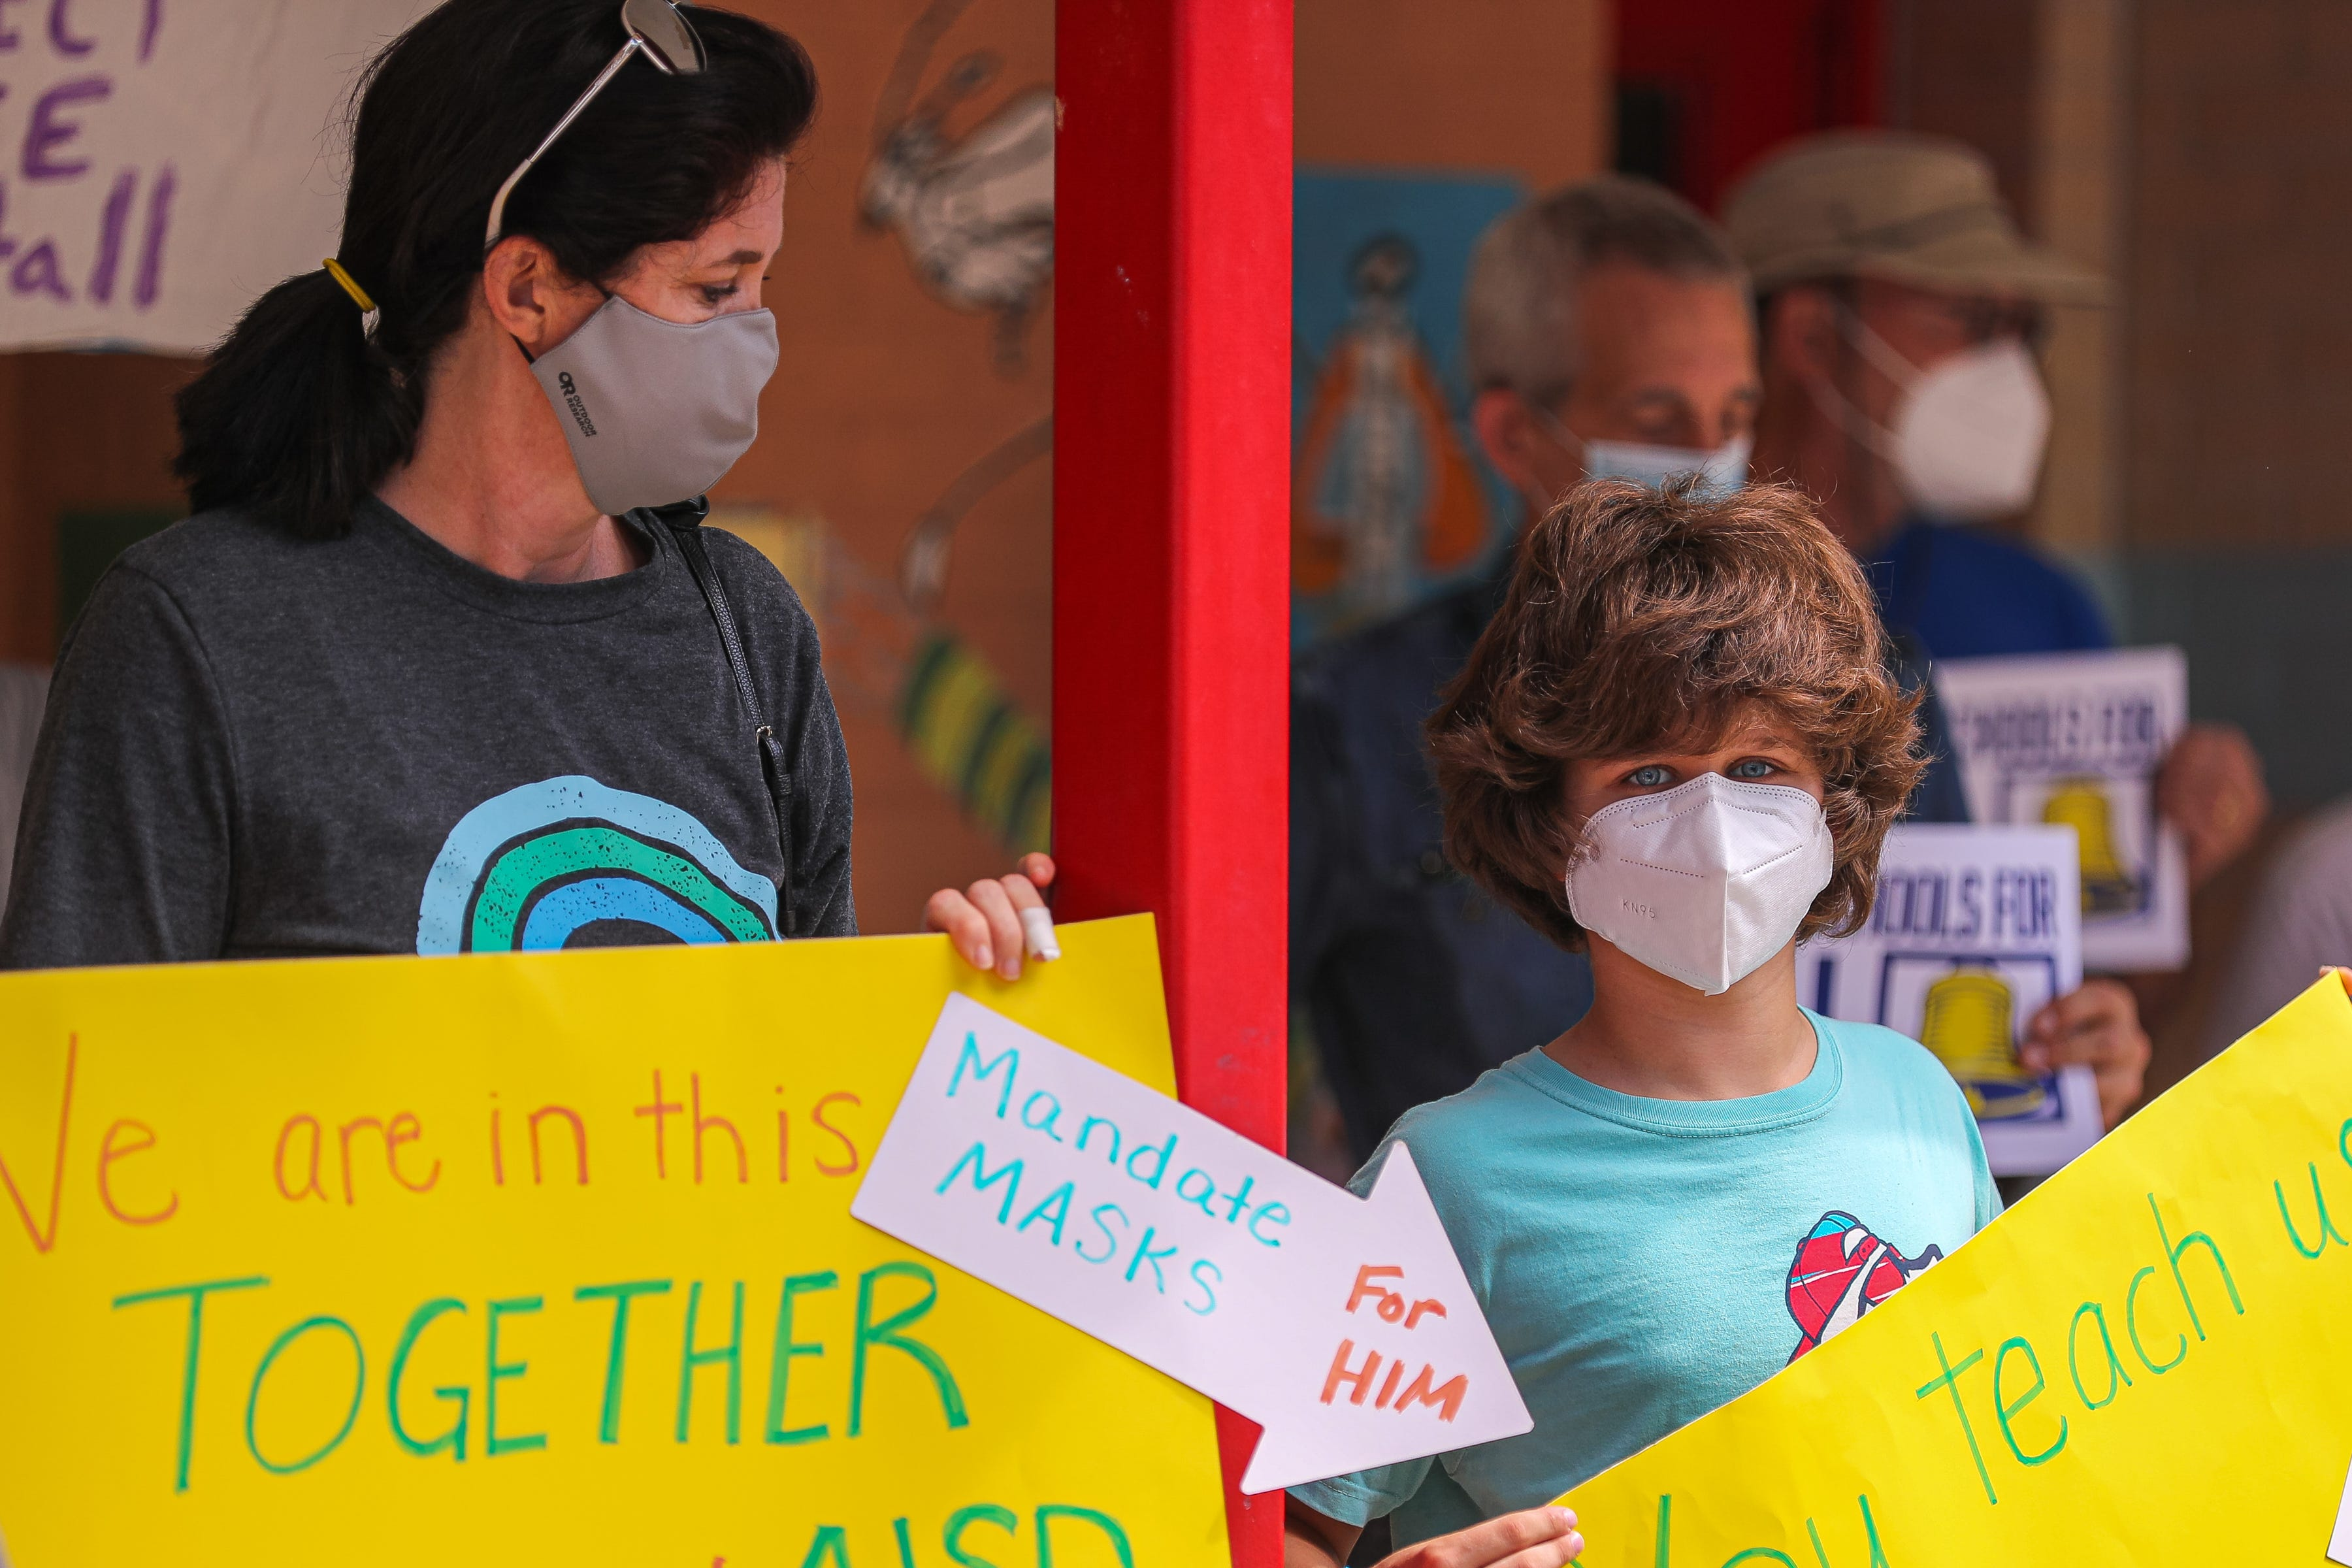 Milana Noueilaty stands with her son, Kaden, holding signs in support of mask mandates. Parents, teachers and medical experts held a press conference at Travis Heights Elementary on Aug. 9, 2021 to demand Austin Independent School District implement a mask mandate ahead of the 2021-2022 school year.